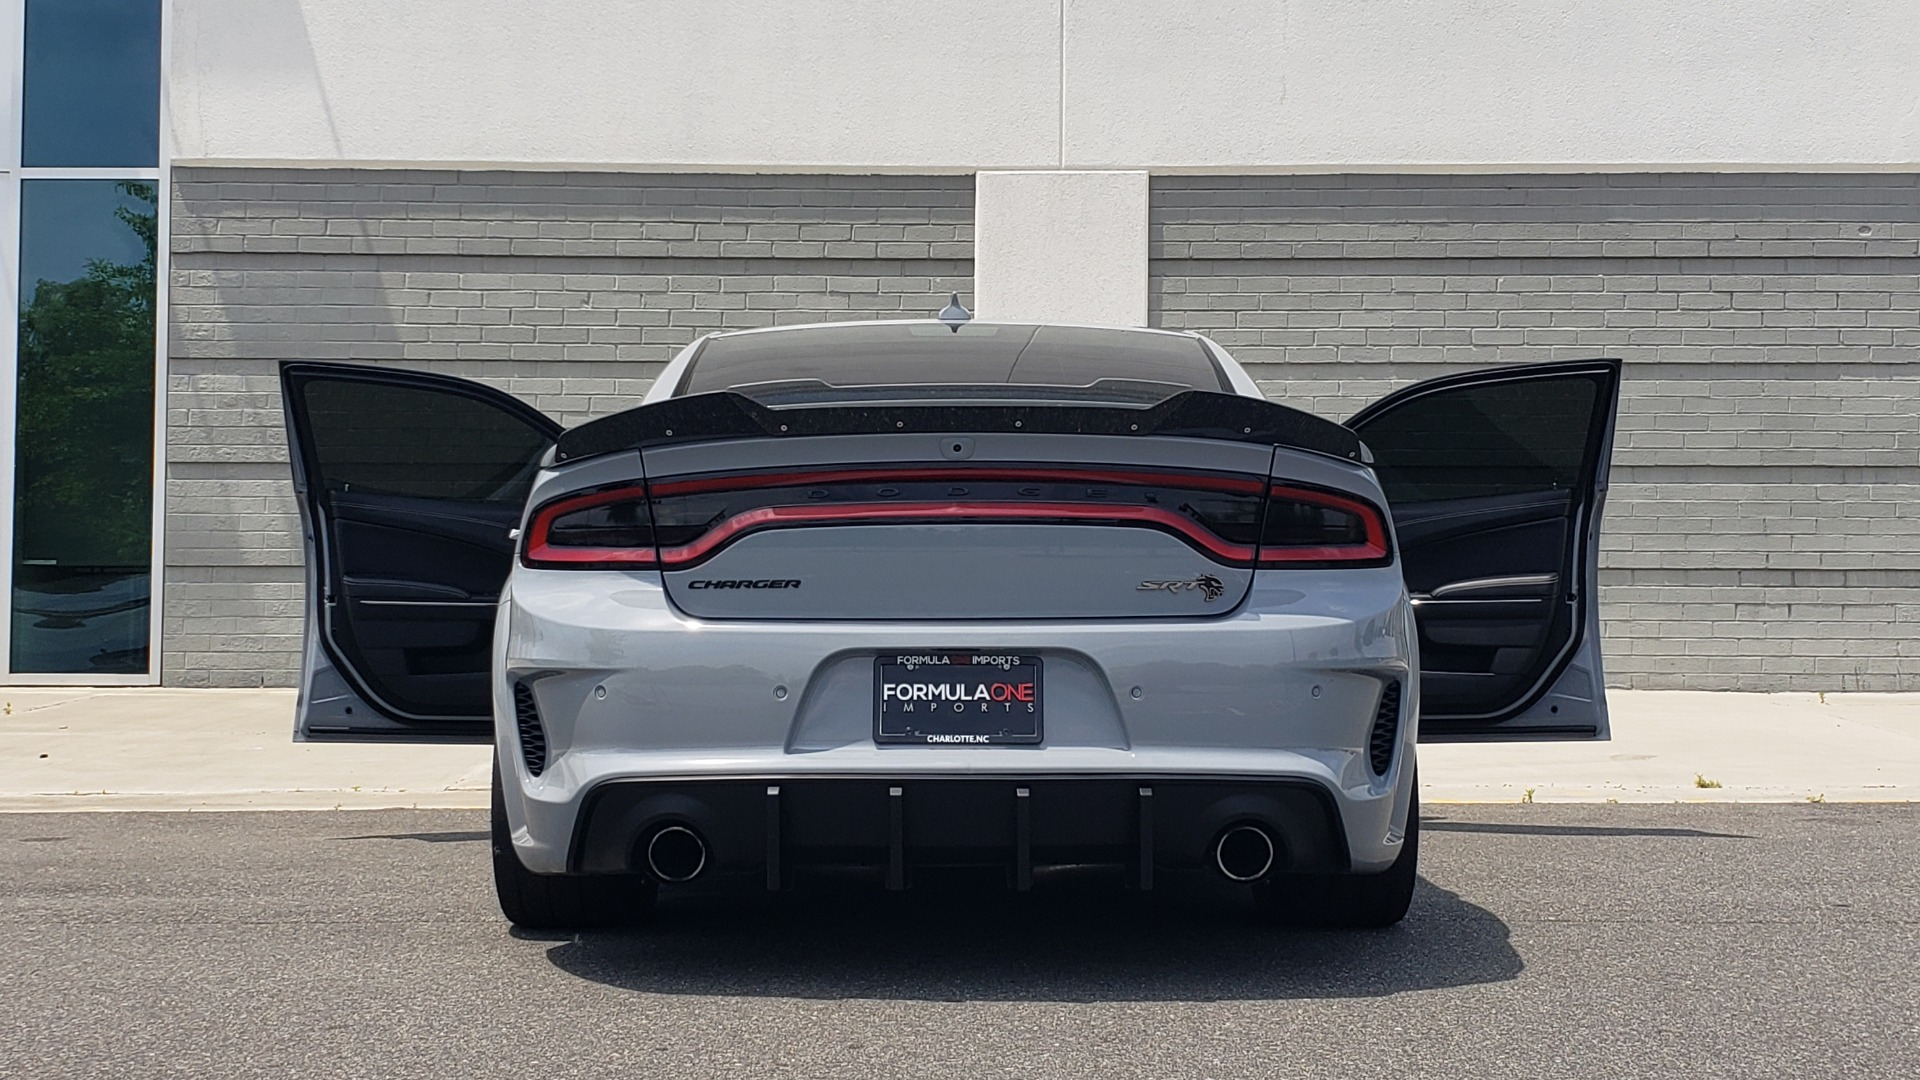 Used 2021 Dodge CHARGER SRT HELLCAT REDEYE WIDEBODY / CUSTOM TUNED 1100BHP for sale Sold at Formula Imports in Charlotte NC 28227 29